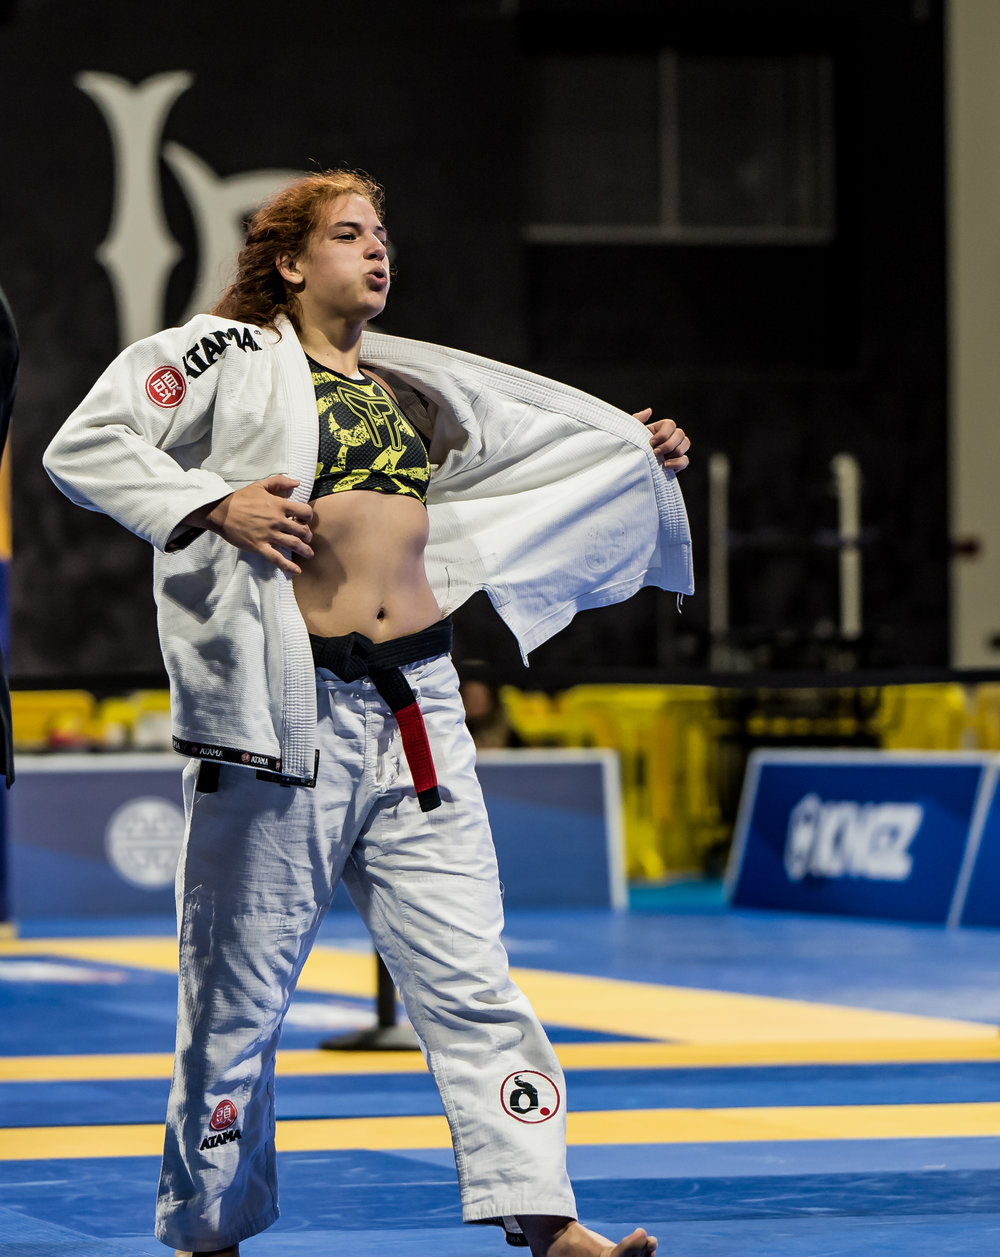 Claudia Do Val wins her second World Championship Gold in the Heavy Weight Black Belt Division.